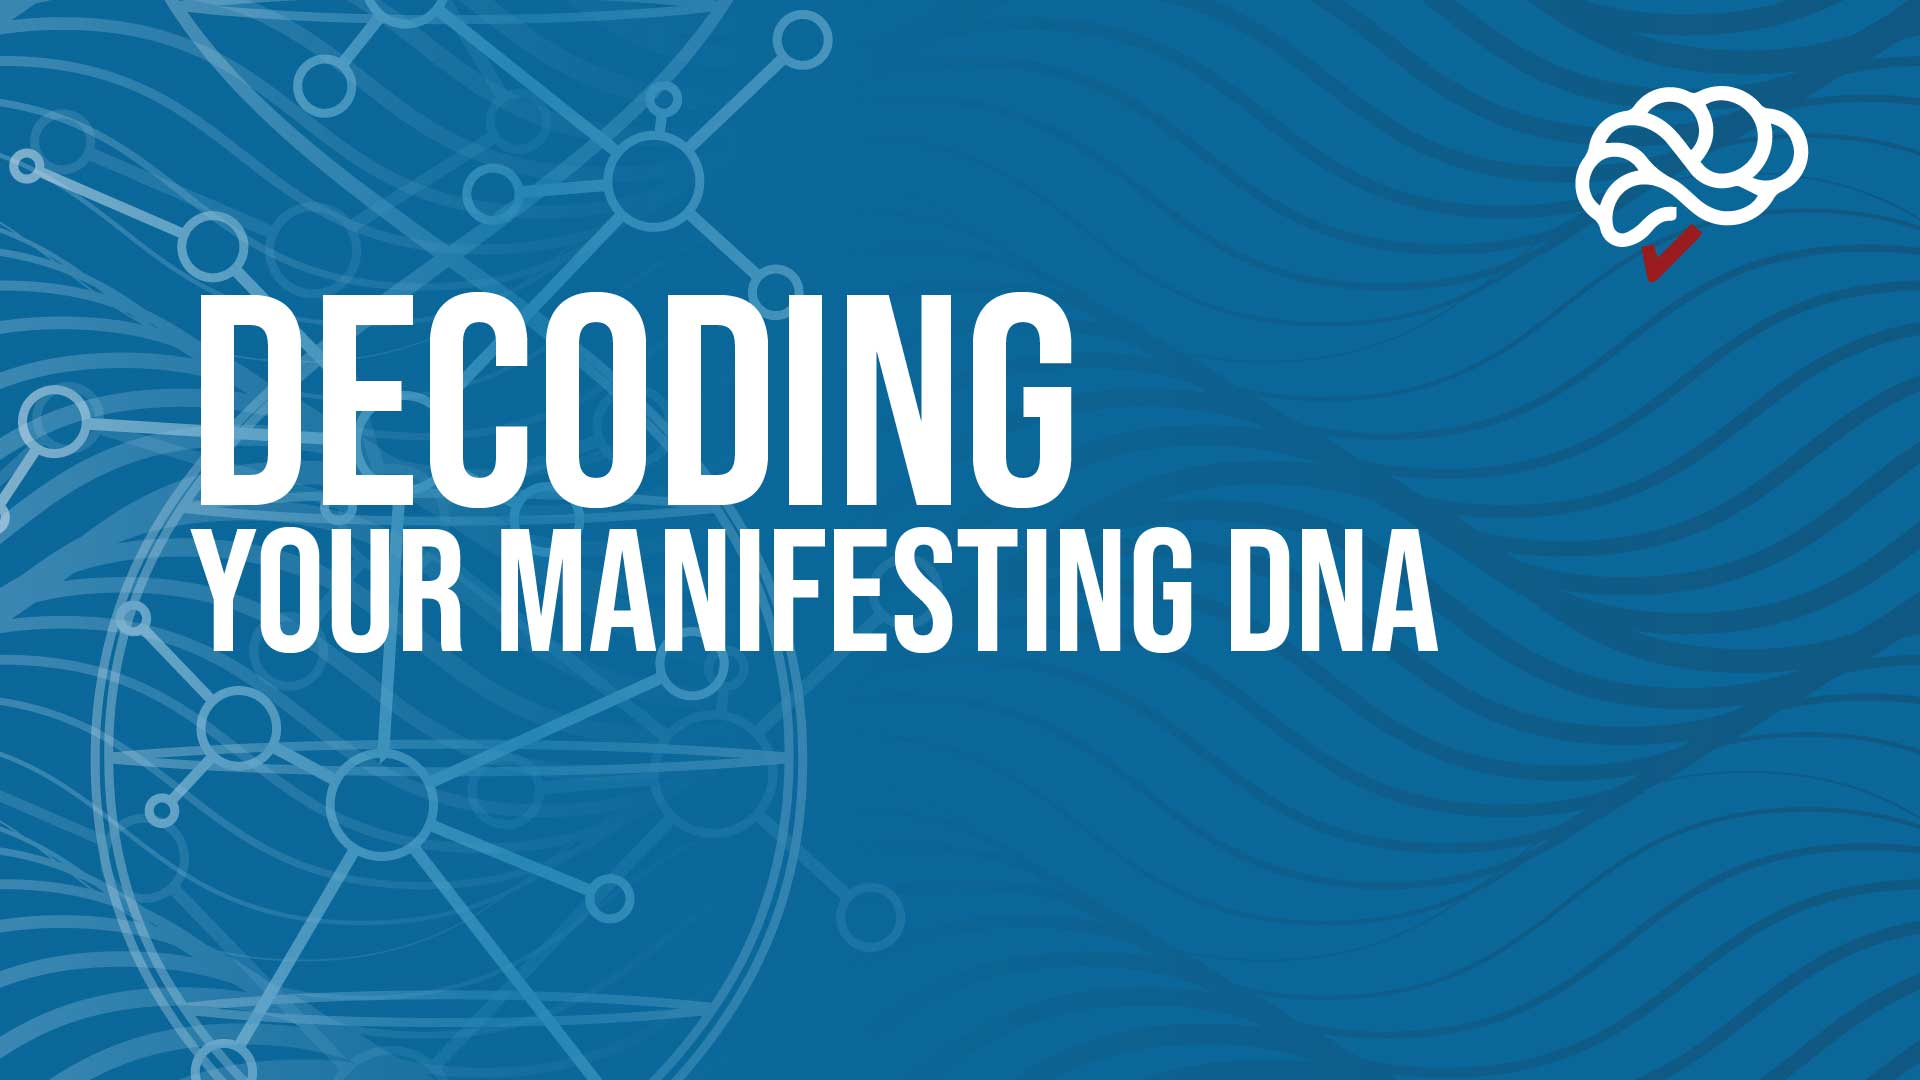 Decoding Your Manifesting DNA for Abundance Course banner